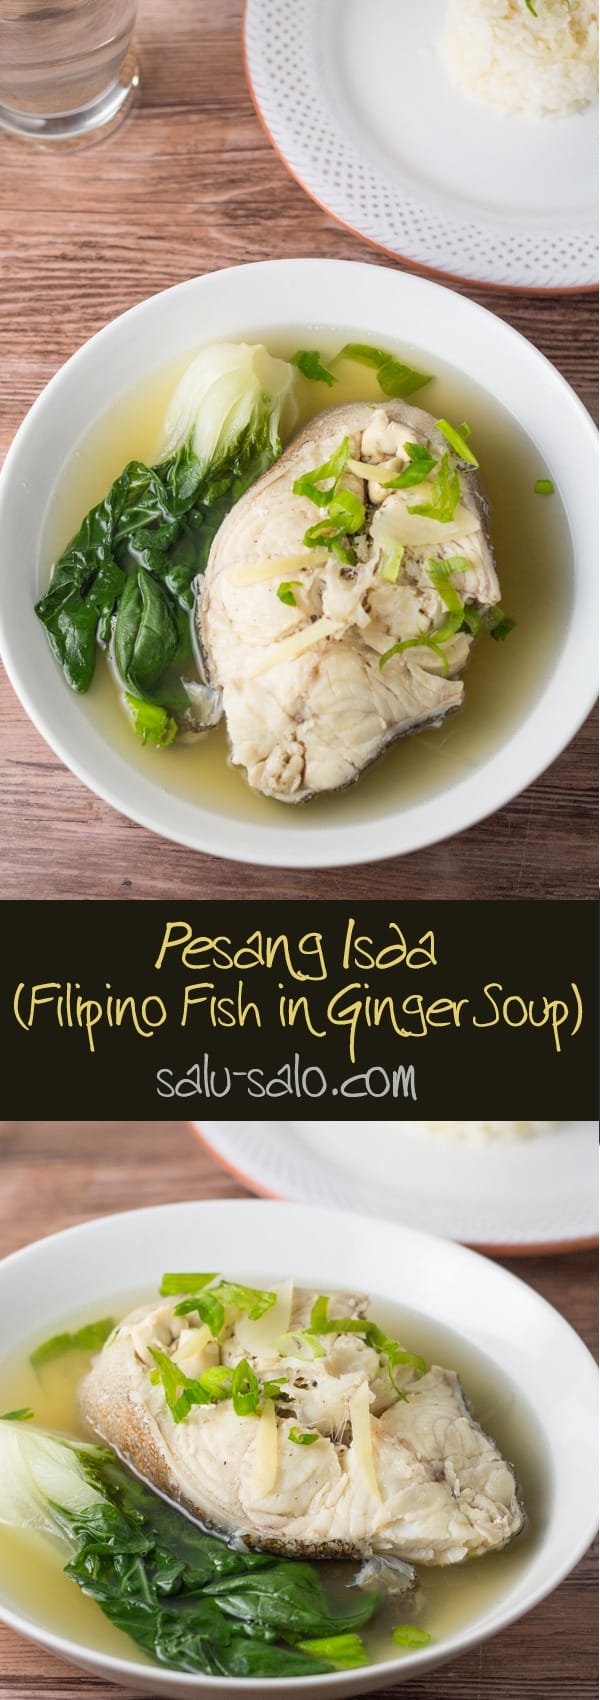 Pesang Isda (Fish in Ginger Soup)